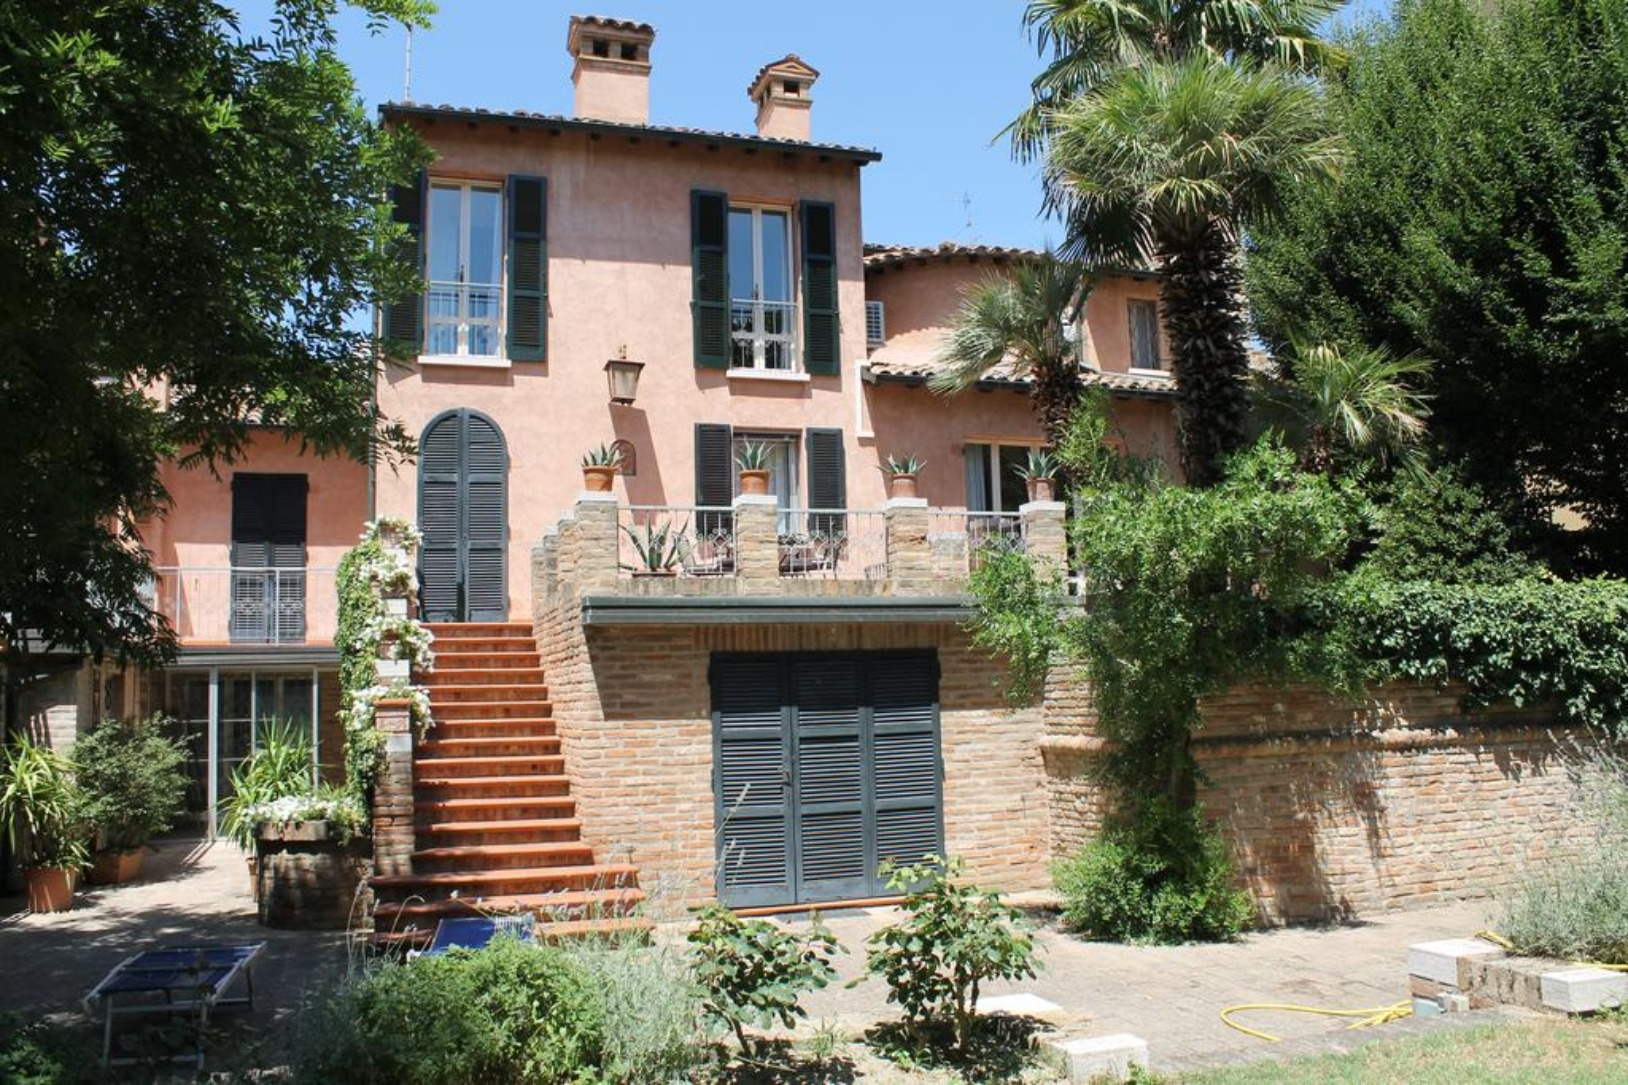 A house with bushes in front of a brick building at Ai Giardini San Vitale.